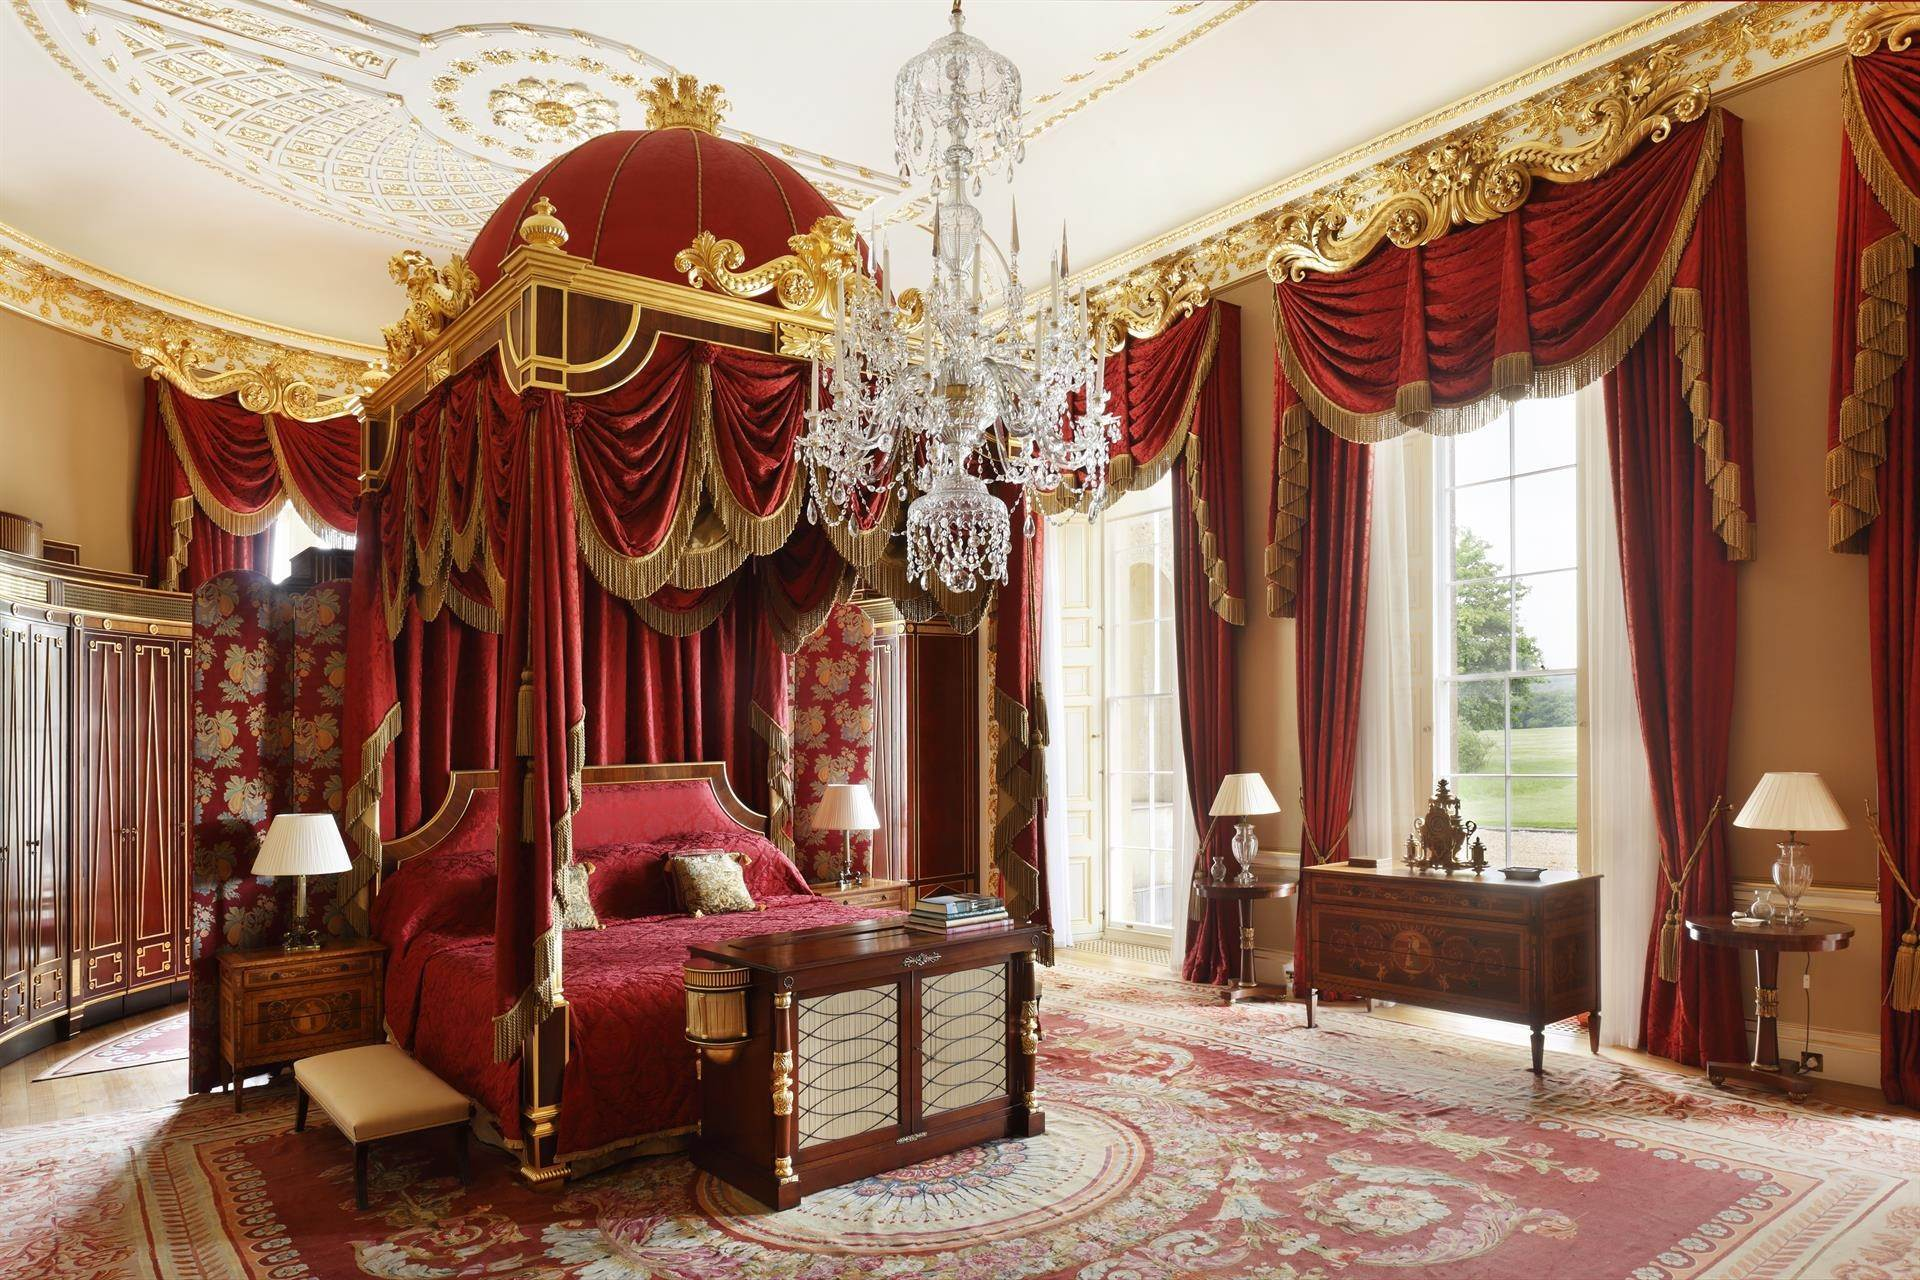 7. Estate for Sale at Hackwood Park England